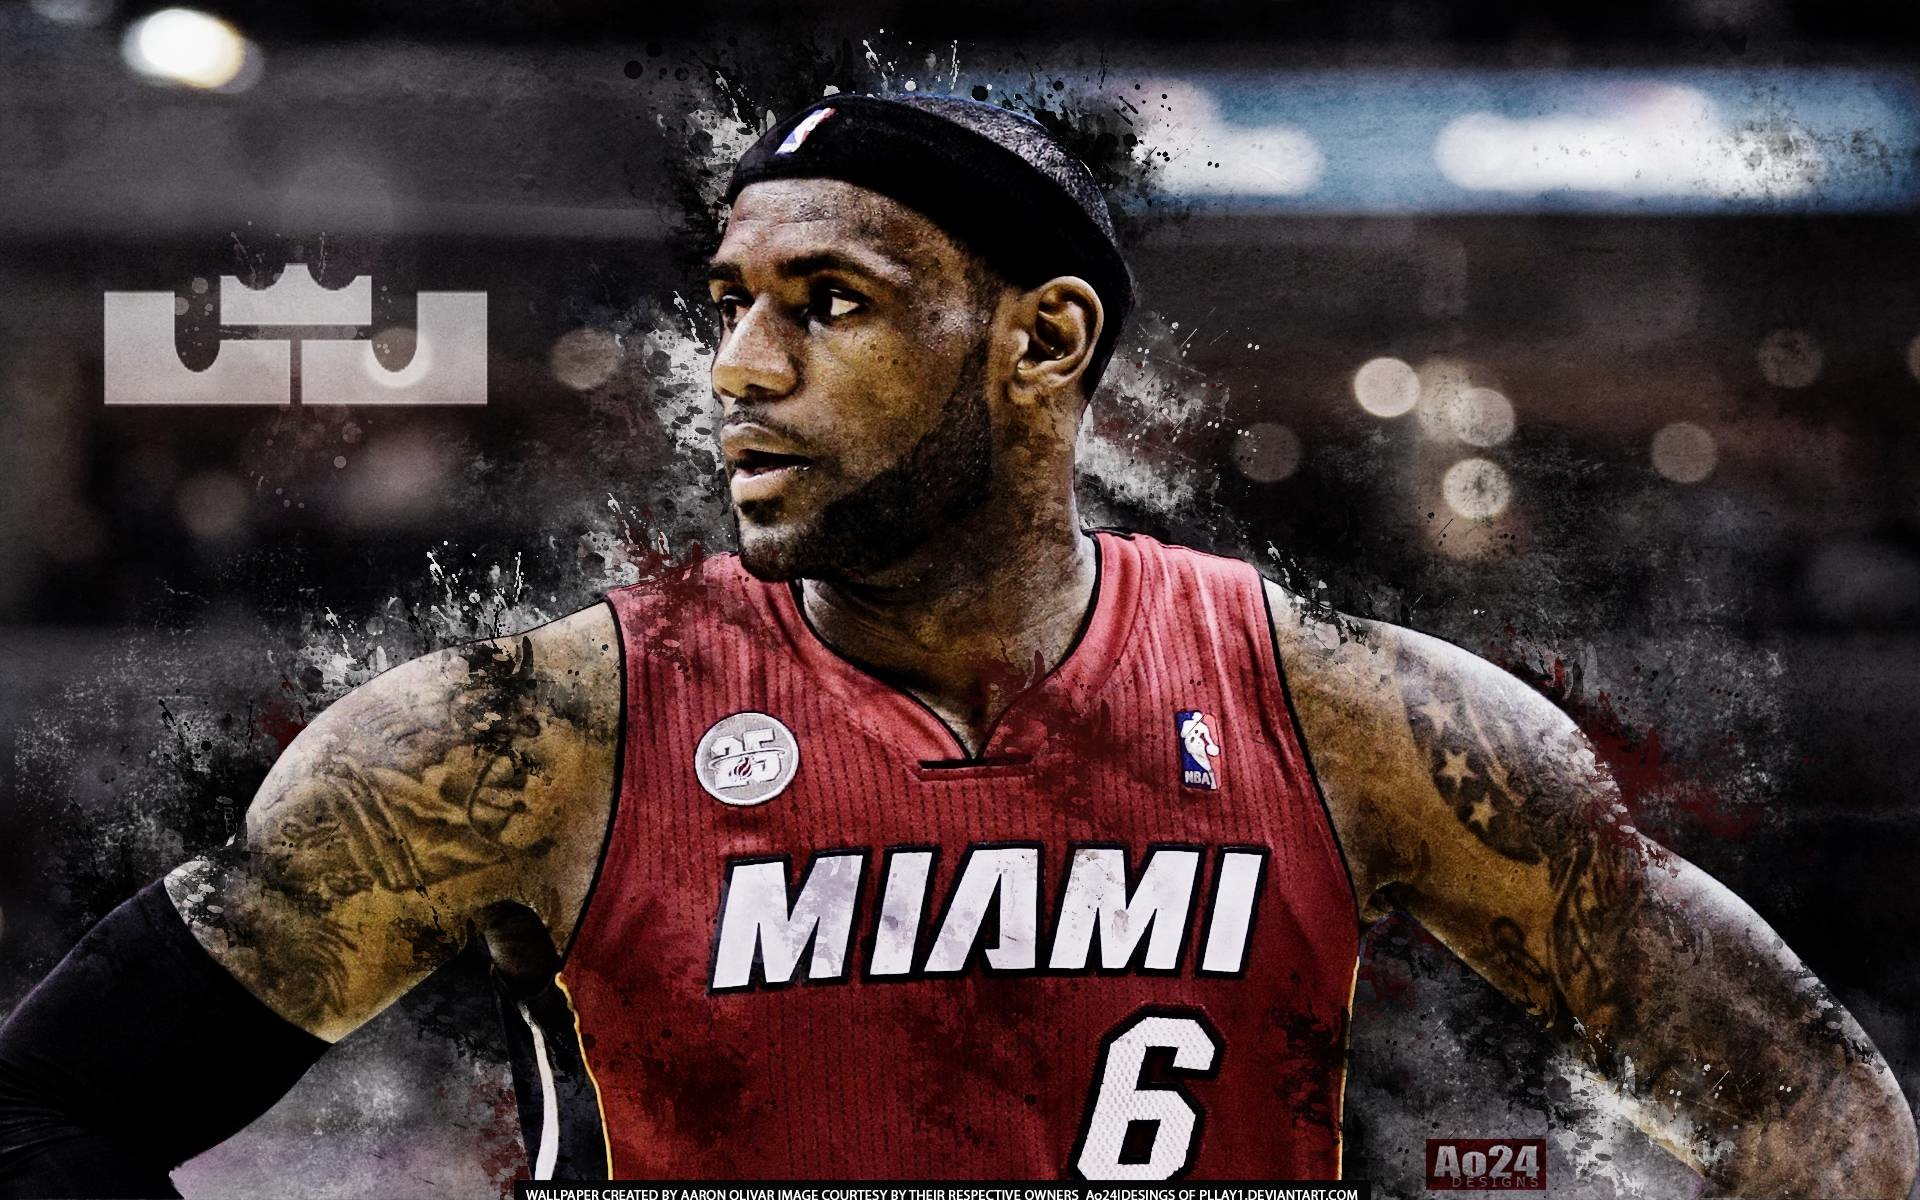 1920x1200 Miami Heat LeBron James Wallpaper #7800 | Hdwidescreens.